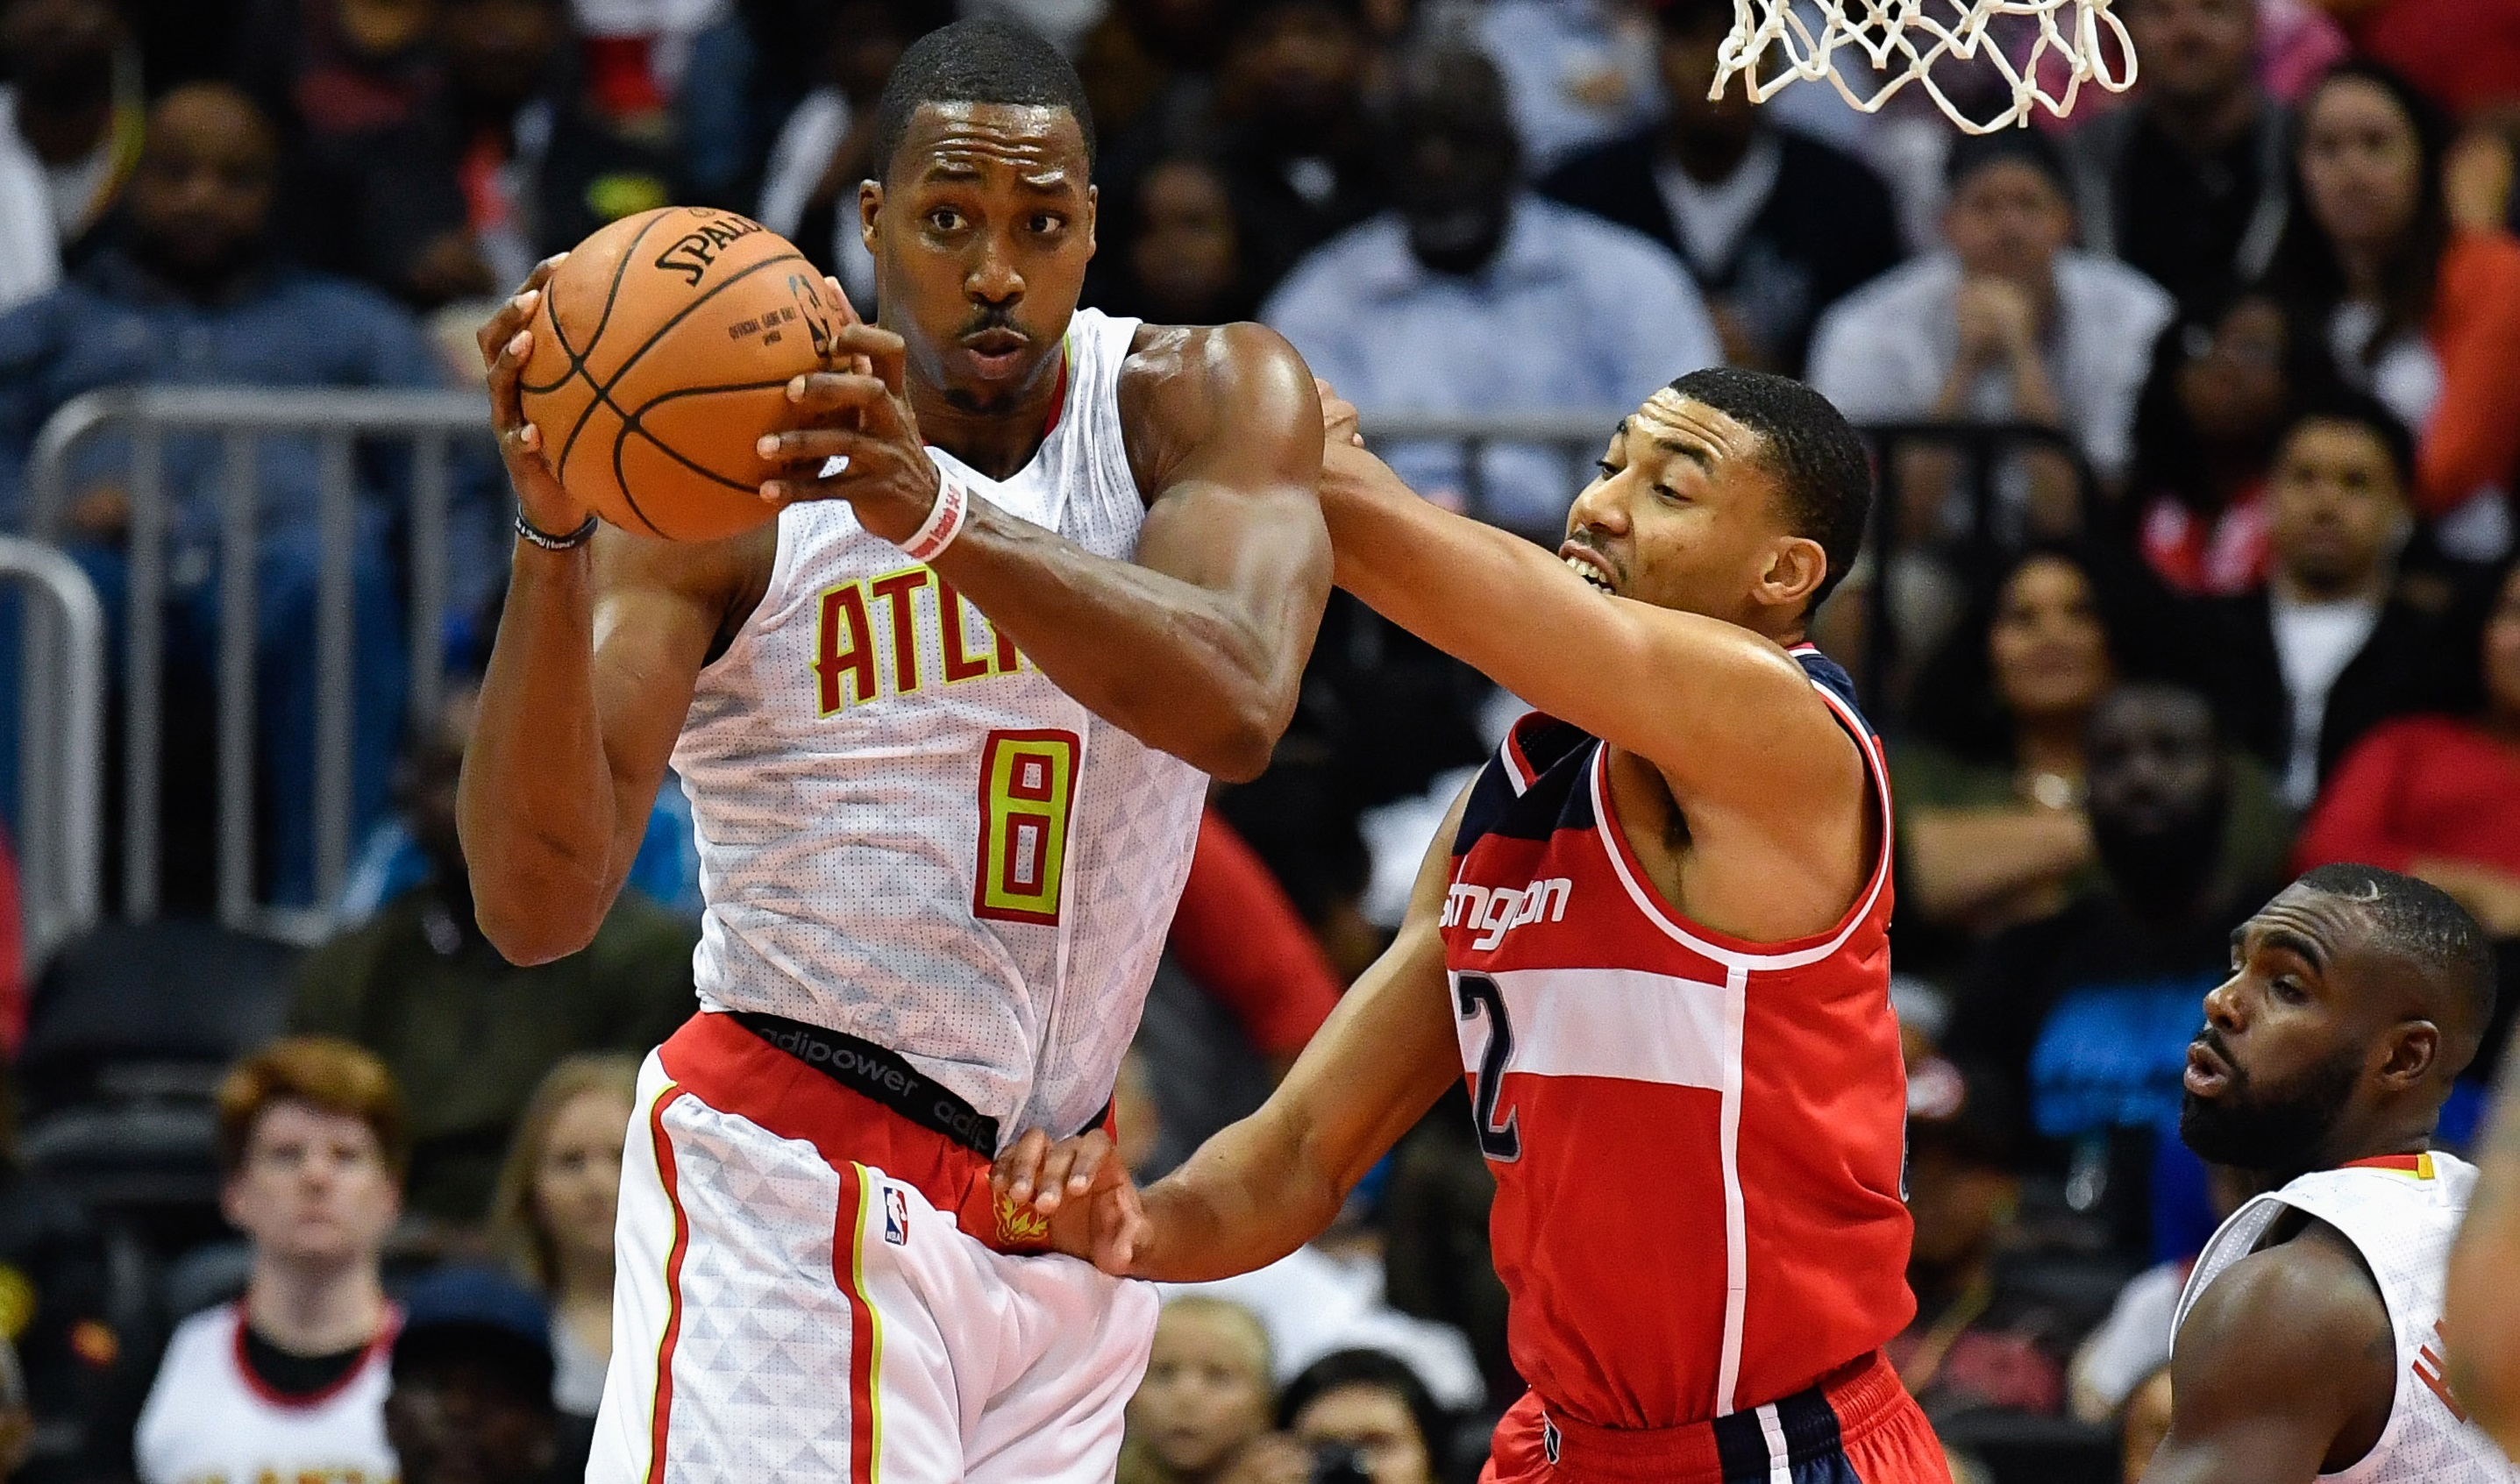 Oct 27, 2016; Atlanta, GA, USA; Atlanta Hawks center Dwight Howard (8) controls a rebound defended by Washington Wizards guard John Wall (2) during the second half at Philips Arena. The Hawks defeated the Wizards 114-99. Mandatory Credit: Dale Zanine-USA TODAY Sports